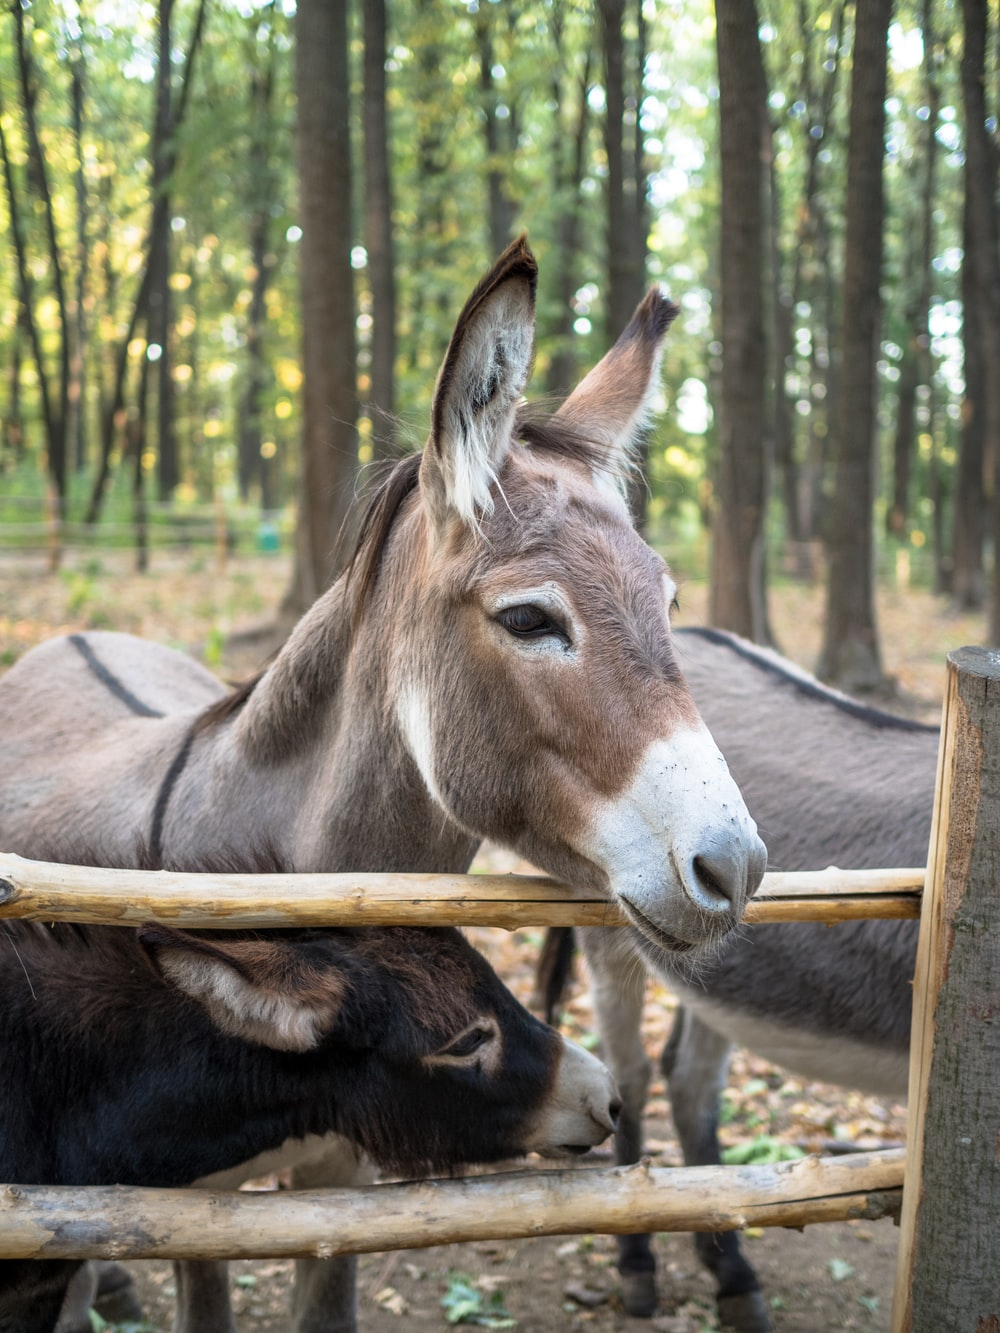 donkey near brown wooden fence during daytime